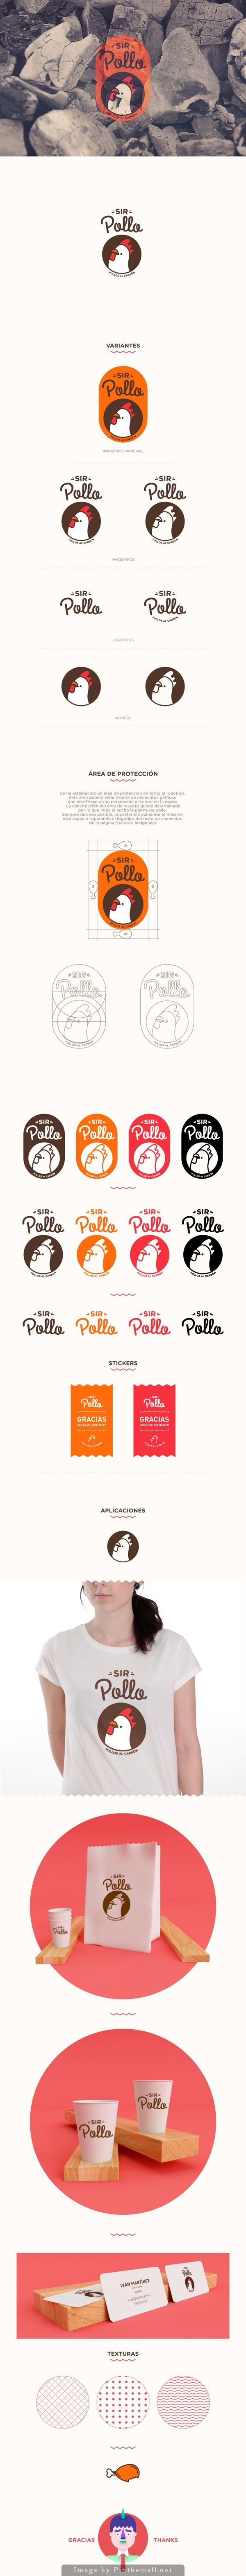 SIR POLLO by AARON MARTINEZ, via Behance has a cute logo on the packaging PD